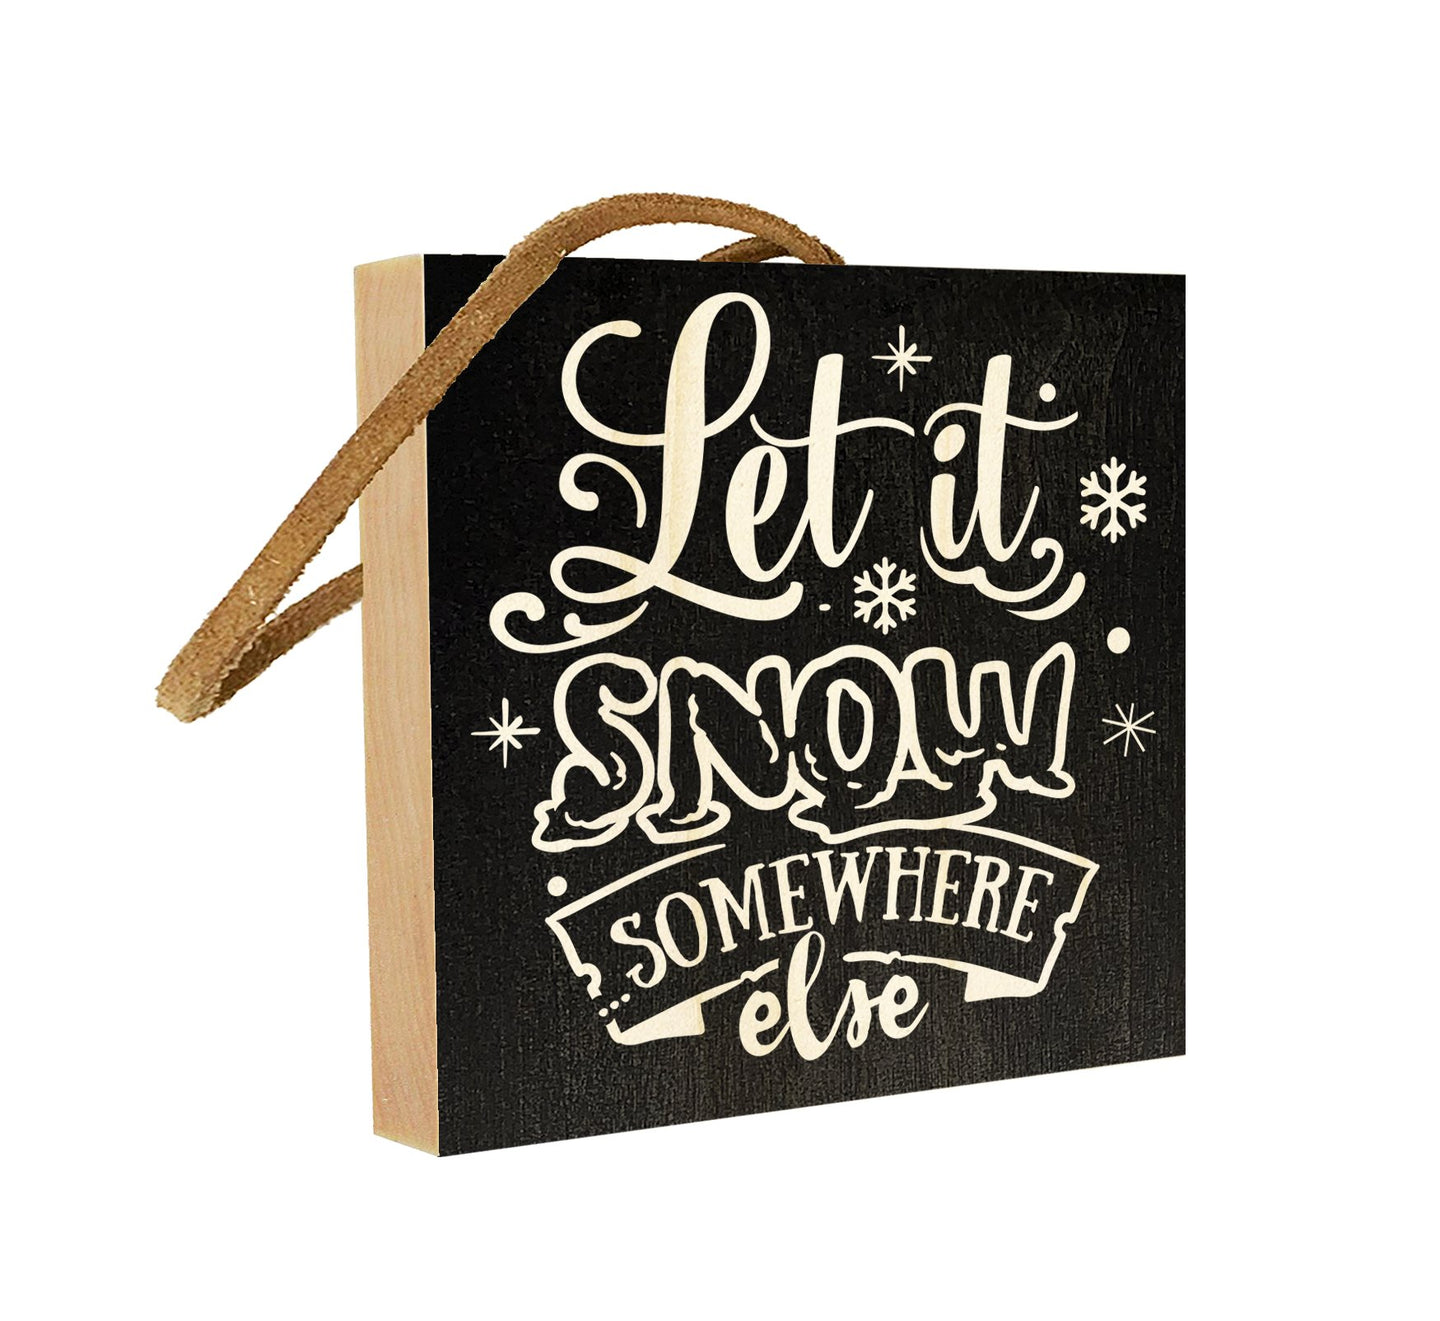 Let it Snow Somewhere Else.